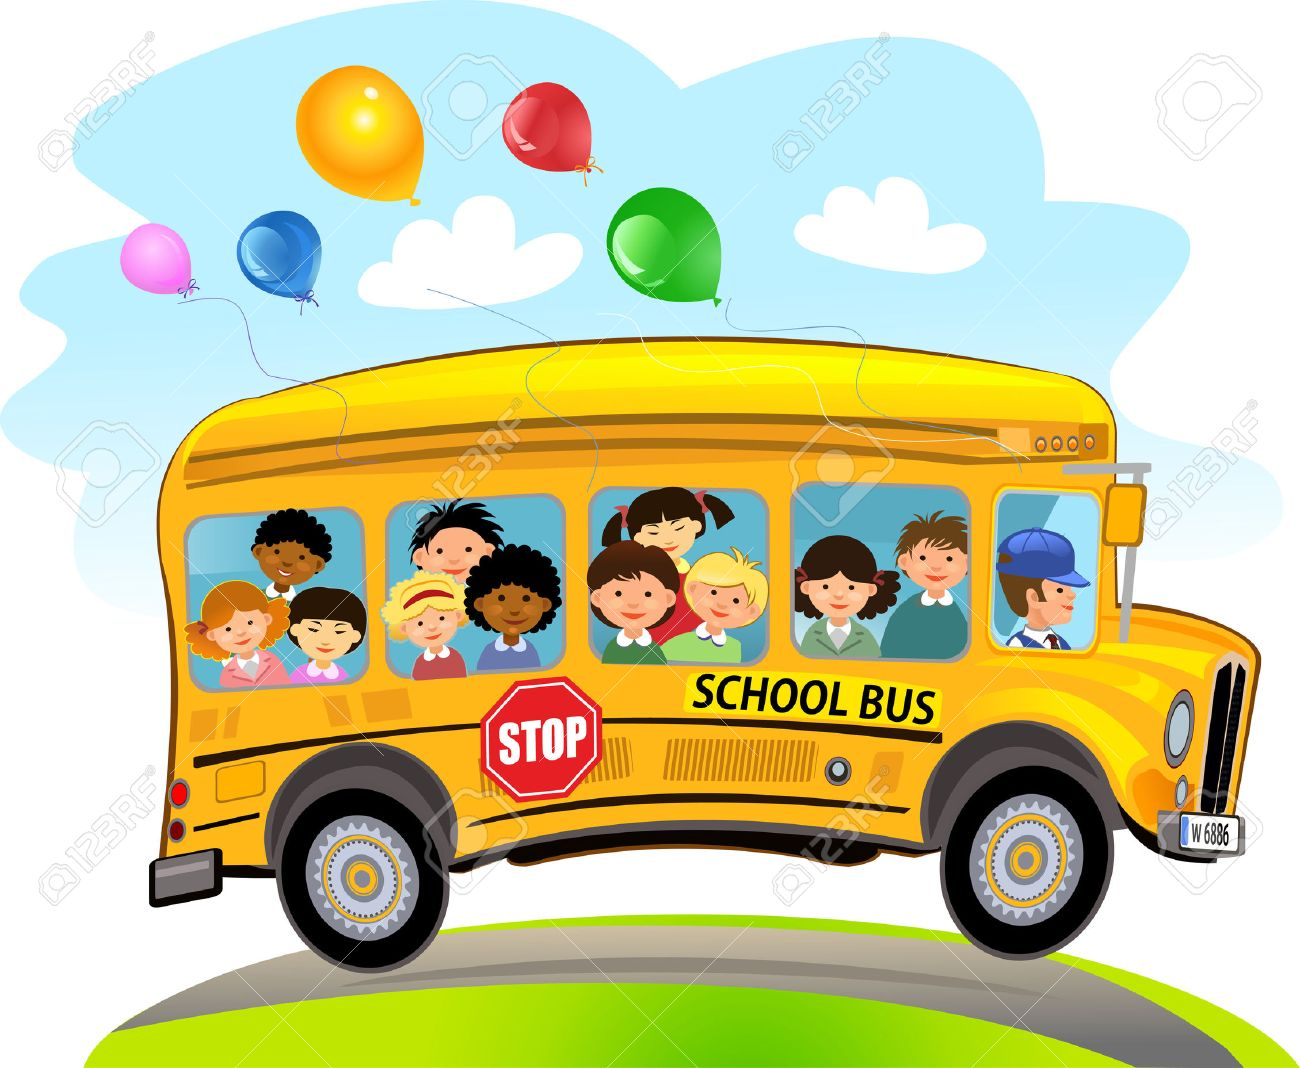 cartoon school kids riding a school bus royalty free cliparts rh 123rf com clipart business cards clipart business